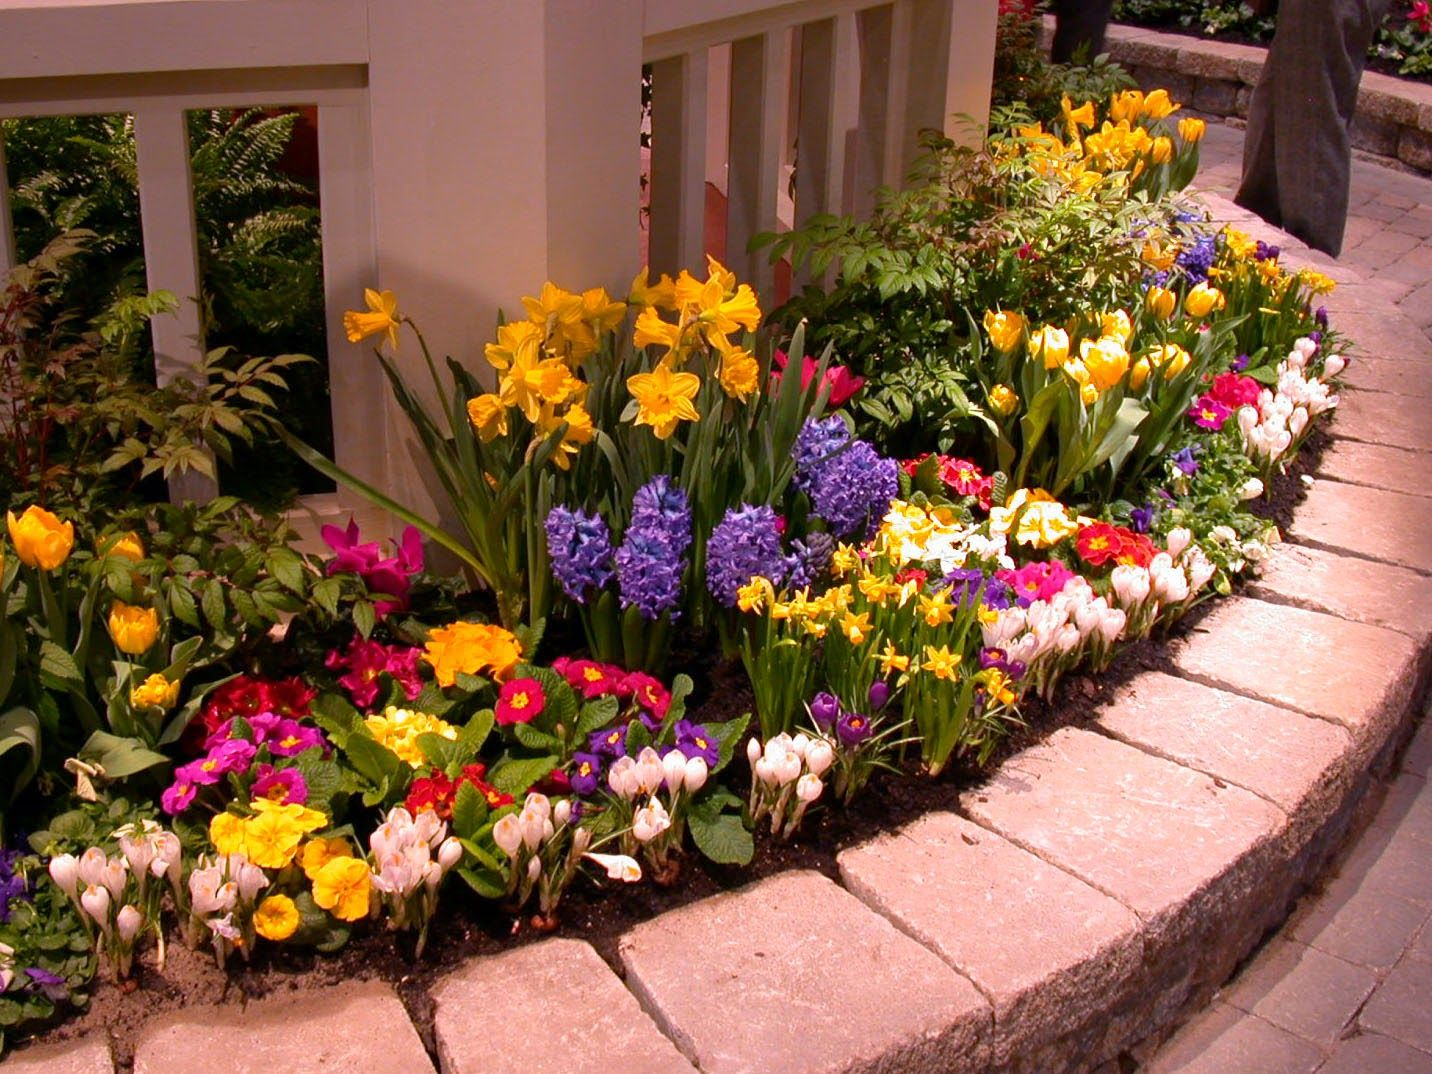 Ideas for making a raised flower bed | Awesomeness | Pinterest | Flower